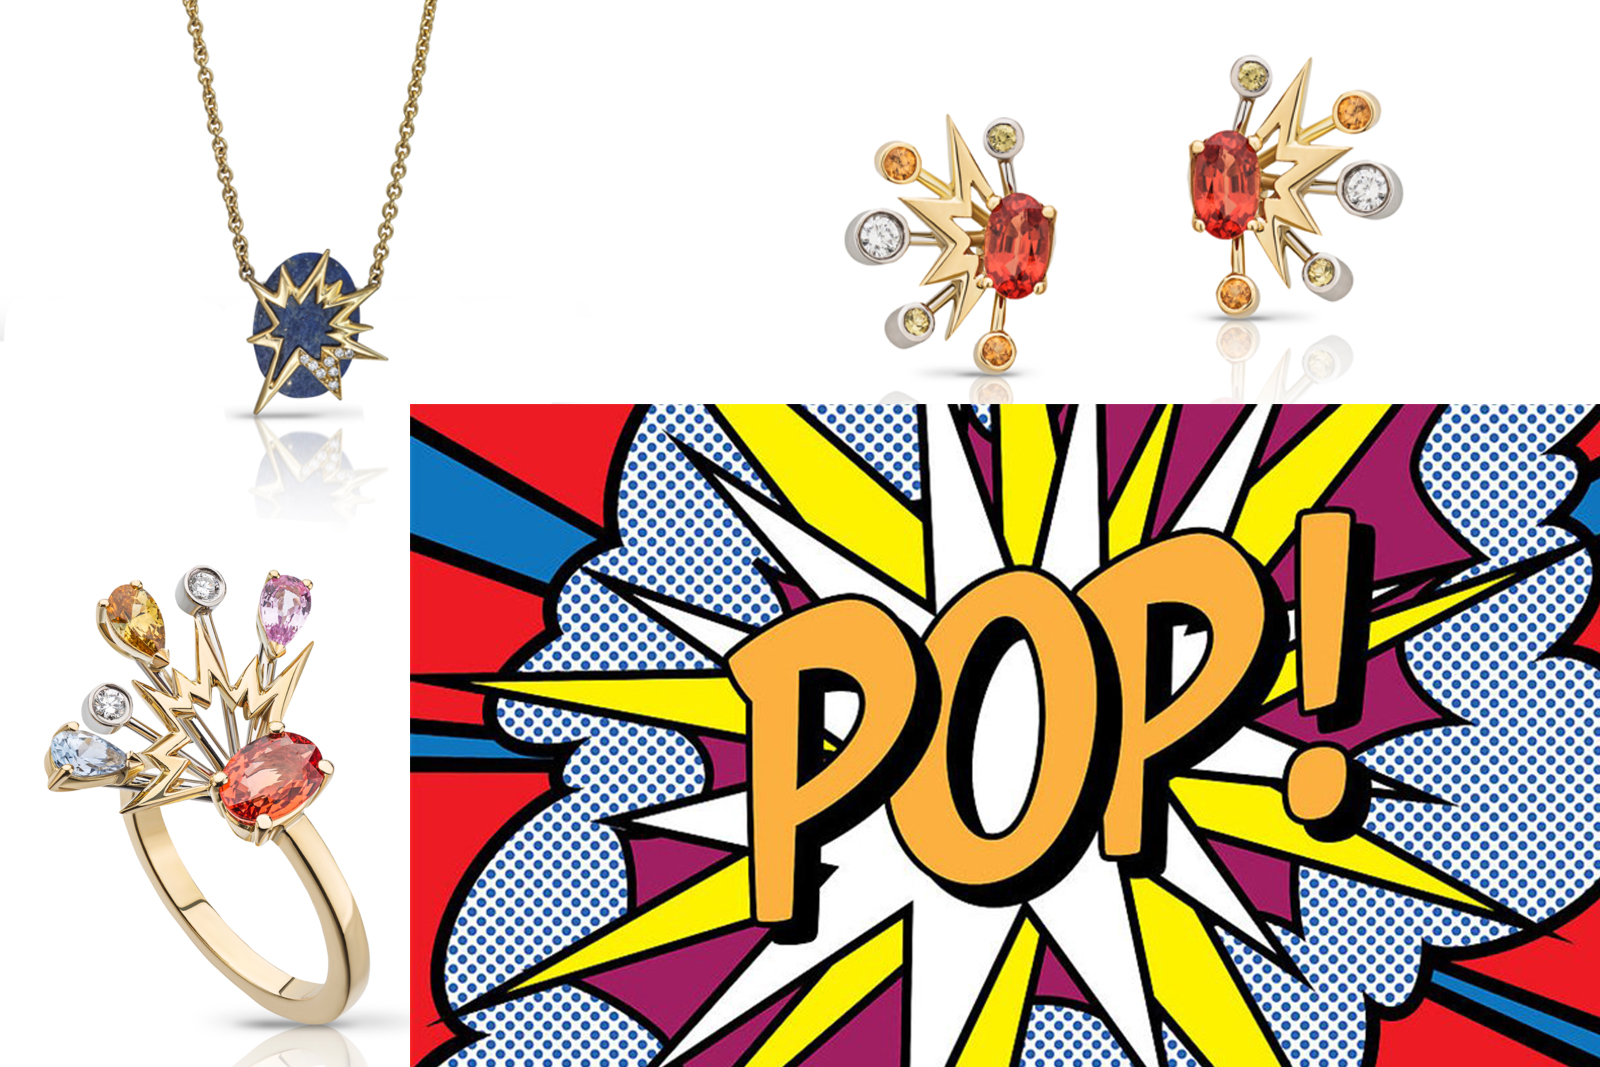 Le Ster (clockwise from bottom left) 'Zadie' ring with diamonds and fancy coloured sapphires in 18K yellow gold and platinum, 'Frida' pendant with diamonds and lapis lazuli, and 'Zadie' earrings with diamonds and fancy coloured sapphires in 18K yellow gold and platinum, with pop art by Roy Lichenstein